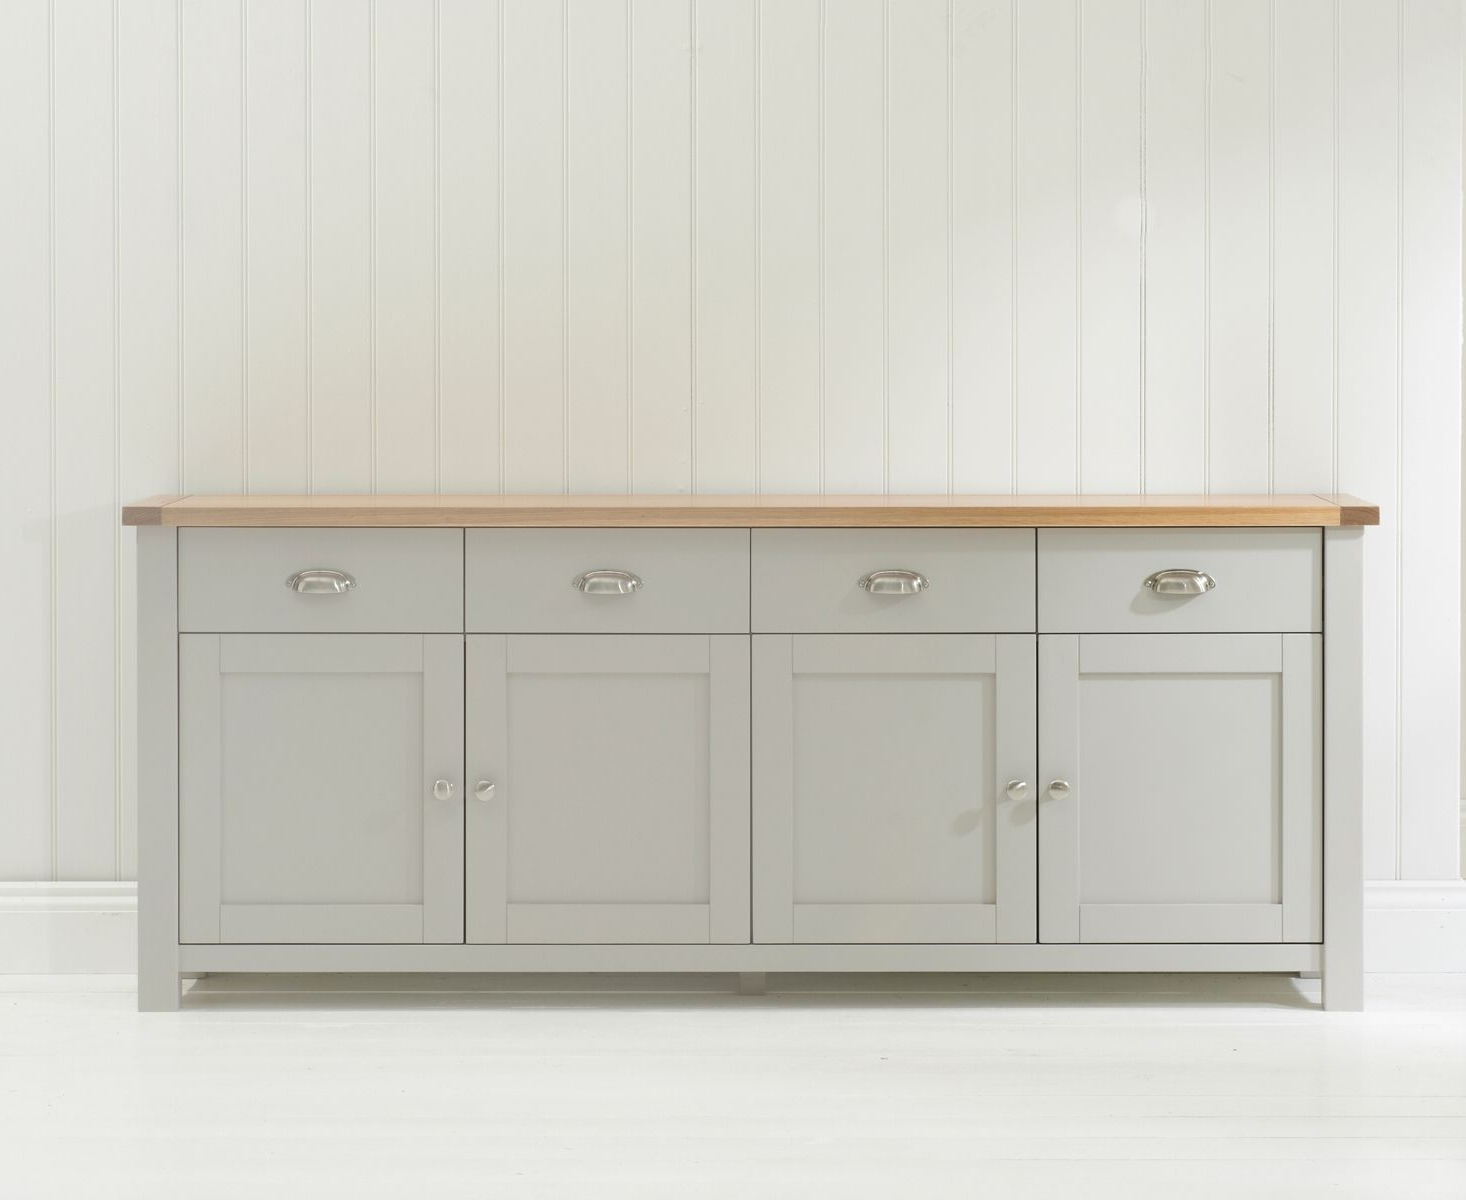 [%Mark Harris Sandringham Oak & Grey Sideboard Xl | Up To 40% Sales Now On With Most Up To Date Rani 4 Door Sideboards|Rani 4 Door Sideboards Within 2018 Mark Harris Sandringham Oak & Grey Sideboard Xl | Up To 40% Sales Now On|Most Popular Rani 4 Door Sideboards For Mark Harris Sandringham Oak & Grey Sideboard Xl | Up To 40% Sales Now On|Popular Mark Harris Sandringham Oak & Grey Sideboard Xl | Up To 40% Sales Now On With Rani 4 Door Sideboards%] (View 1 of 20)